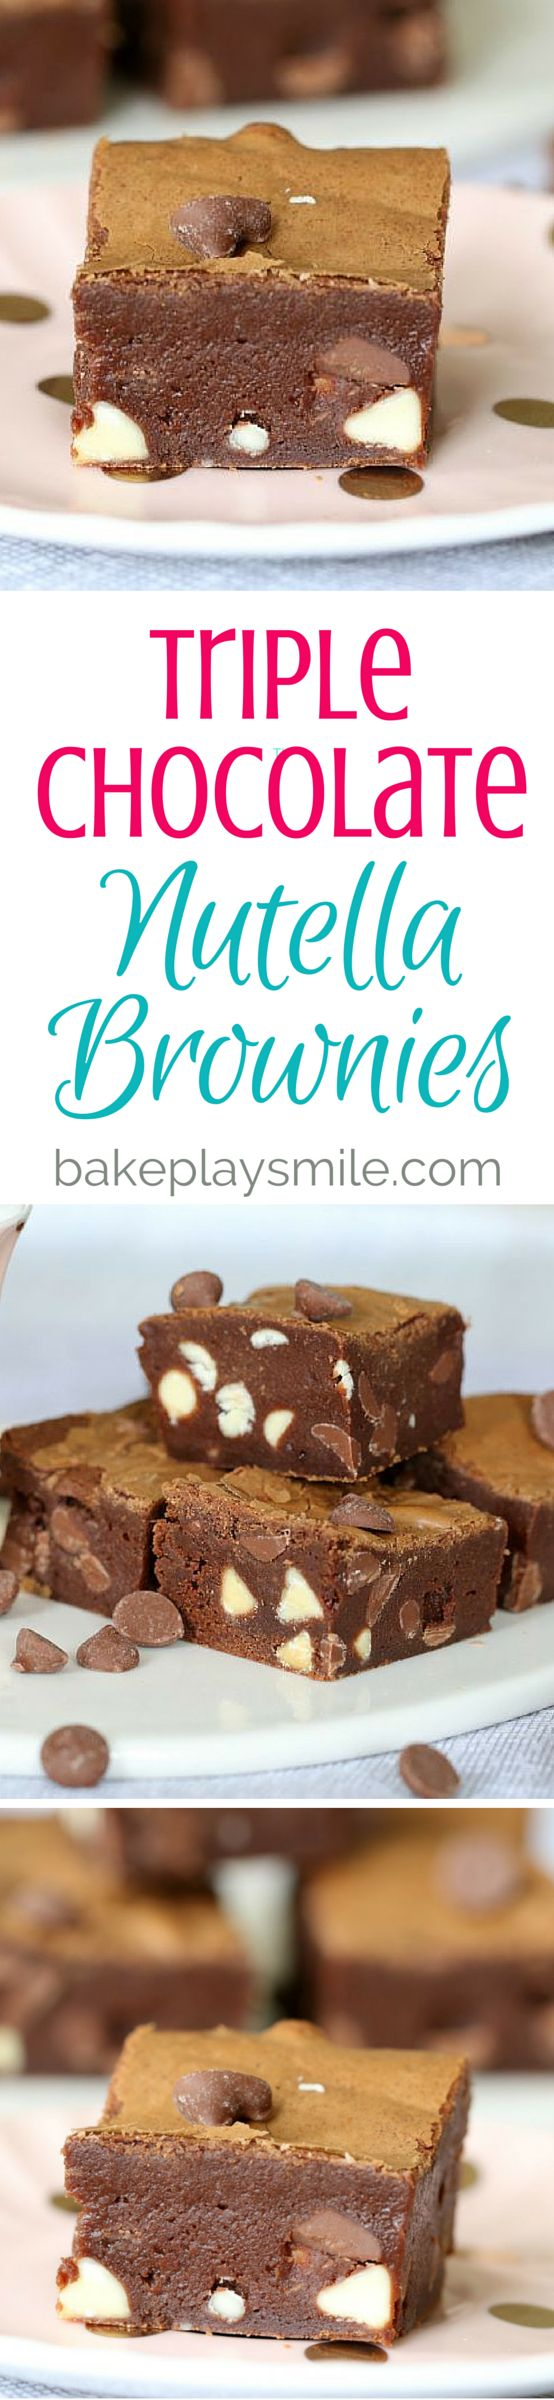 Triple Chocolate Nutella Brownies!!!!!!! Totally over the top, rich and decadent... these Triple Chocolate Nutella Brownies are absolutely delicious!!! #triple #chocolate #brownies #nutella #recipe #easy #dessert #thermomix #conventional